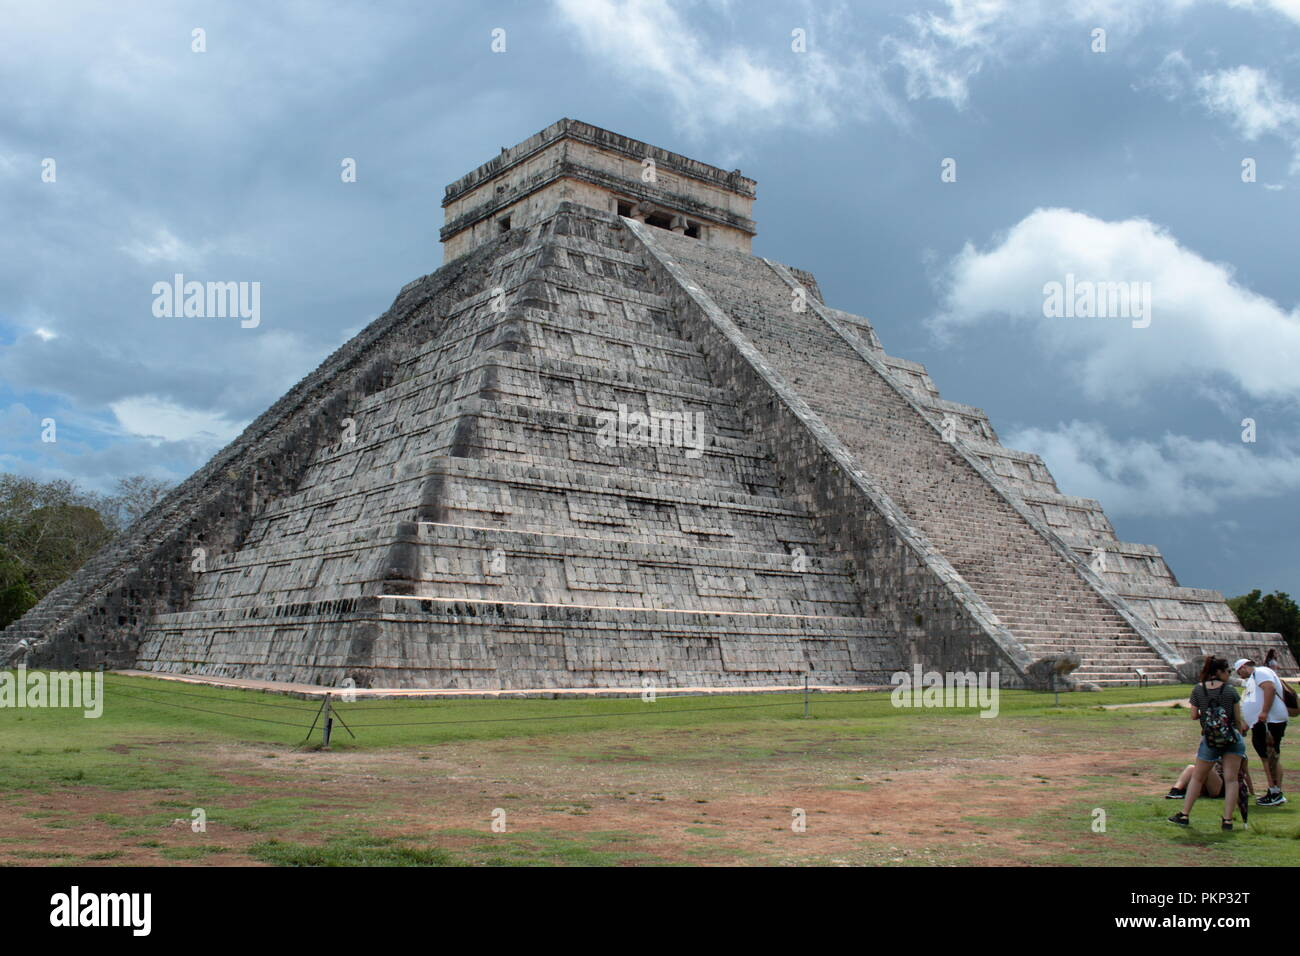 Chichén Itzá archaeological site with its splendid structures - Stock Image